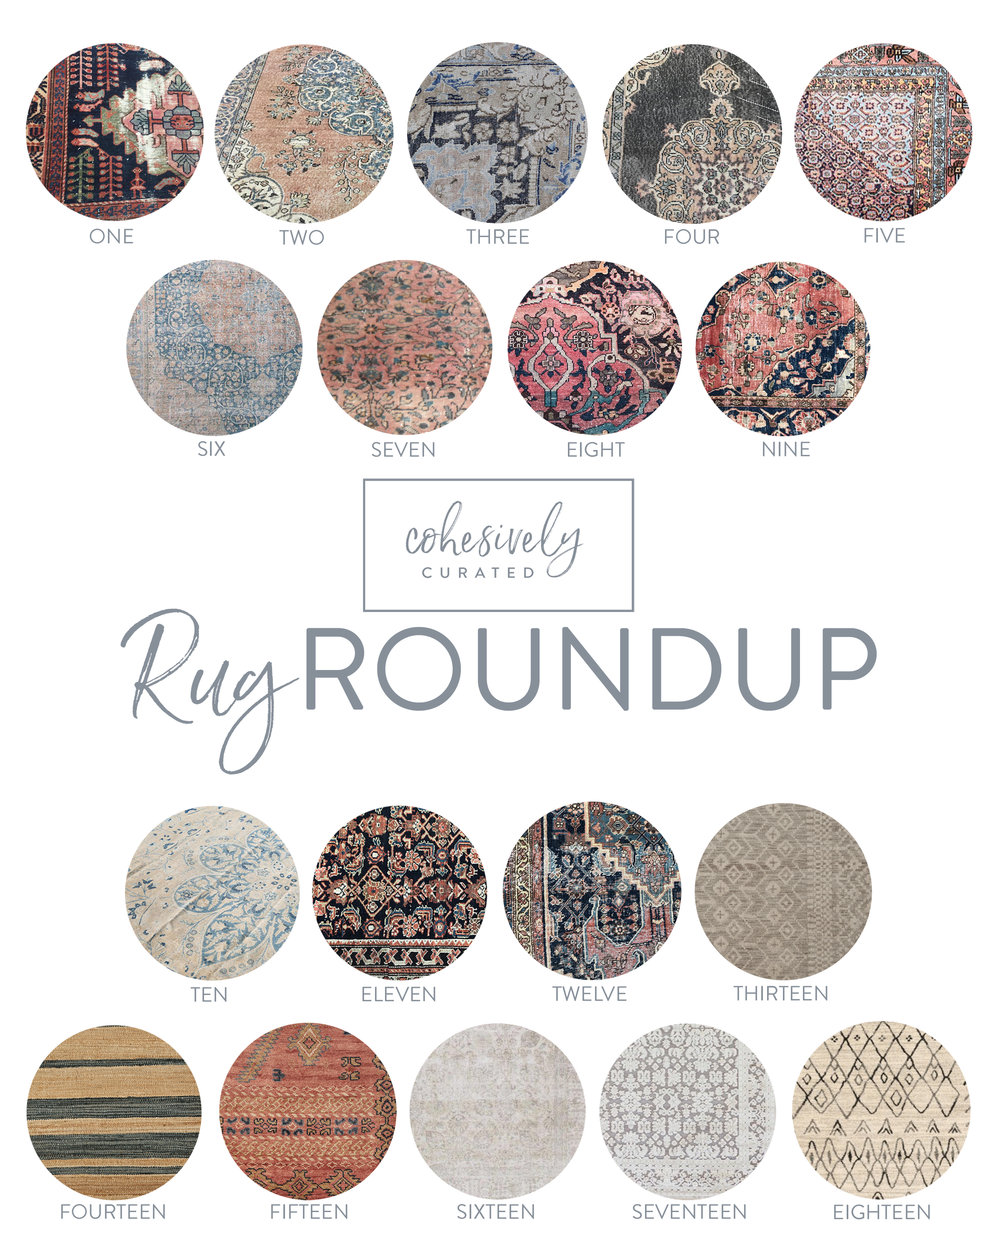 Cohesively Curated Rug Roundup.jpg